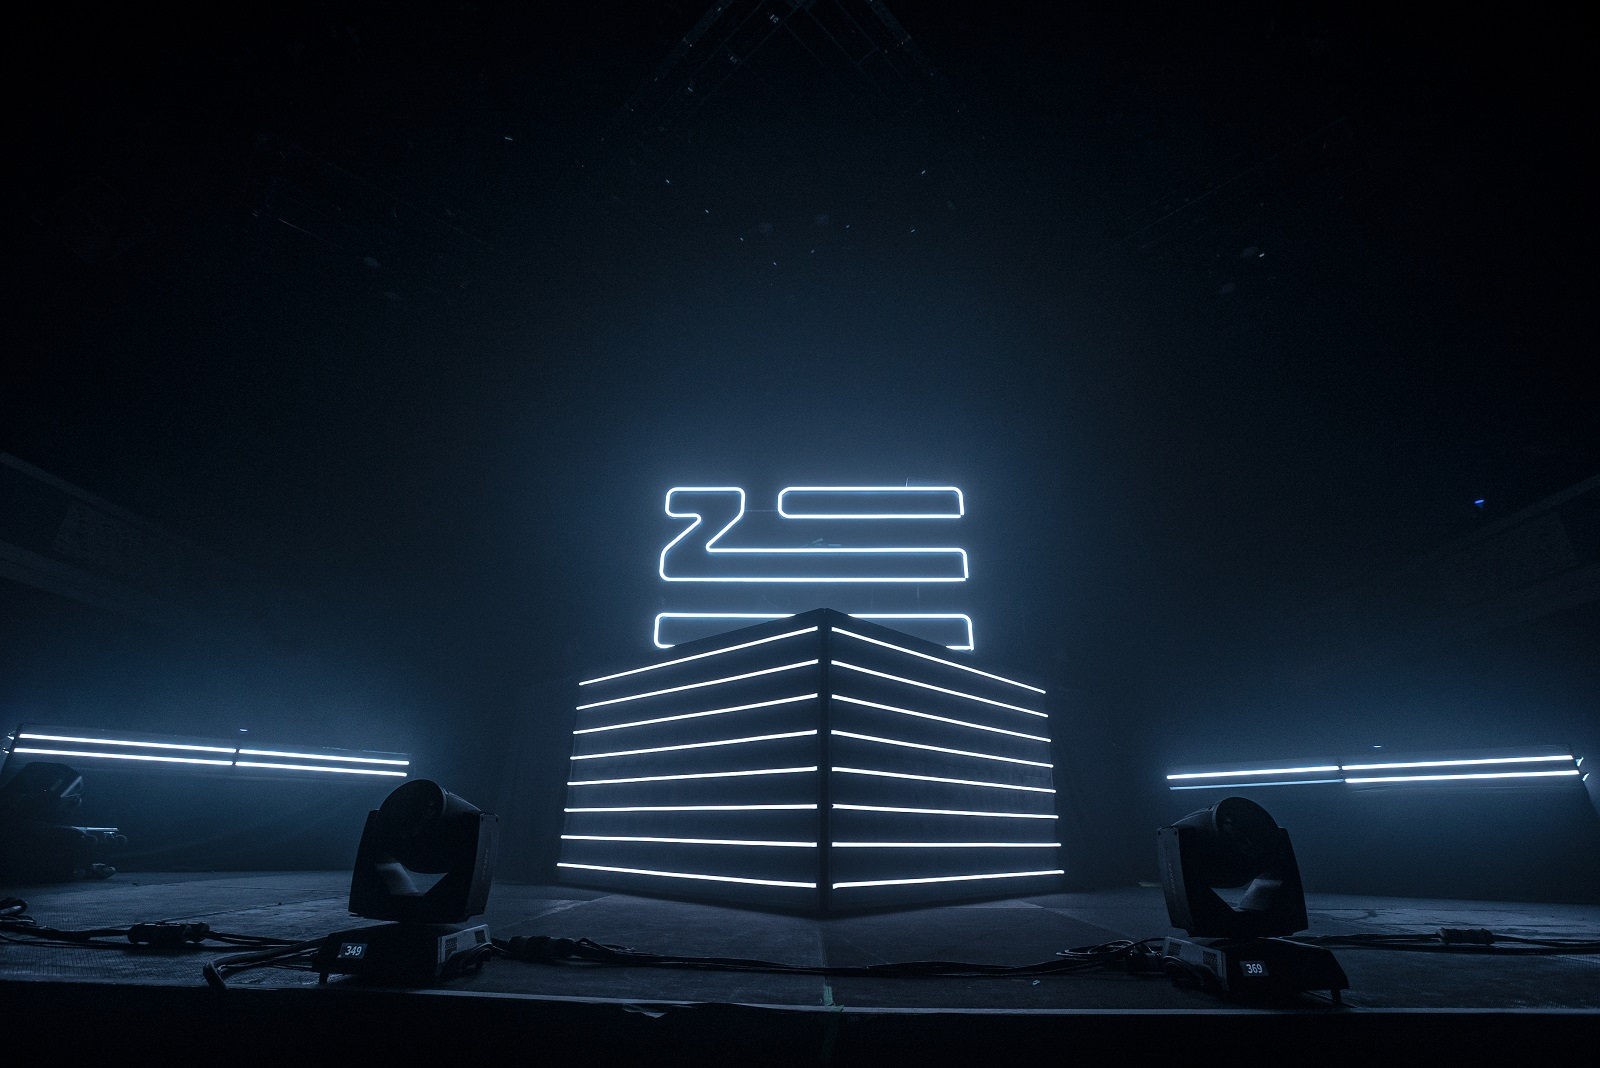 ZHU surprises fans with a KILLER Bad and Boujee remix | Your EDM